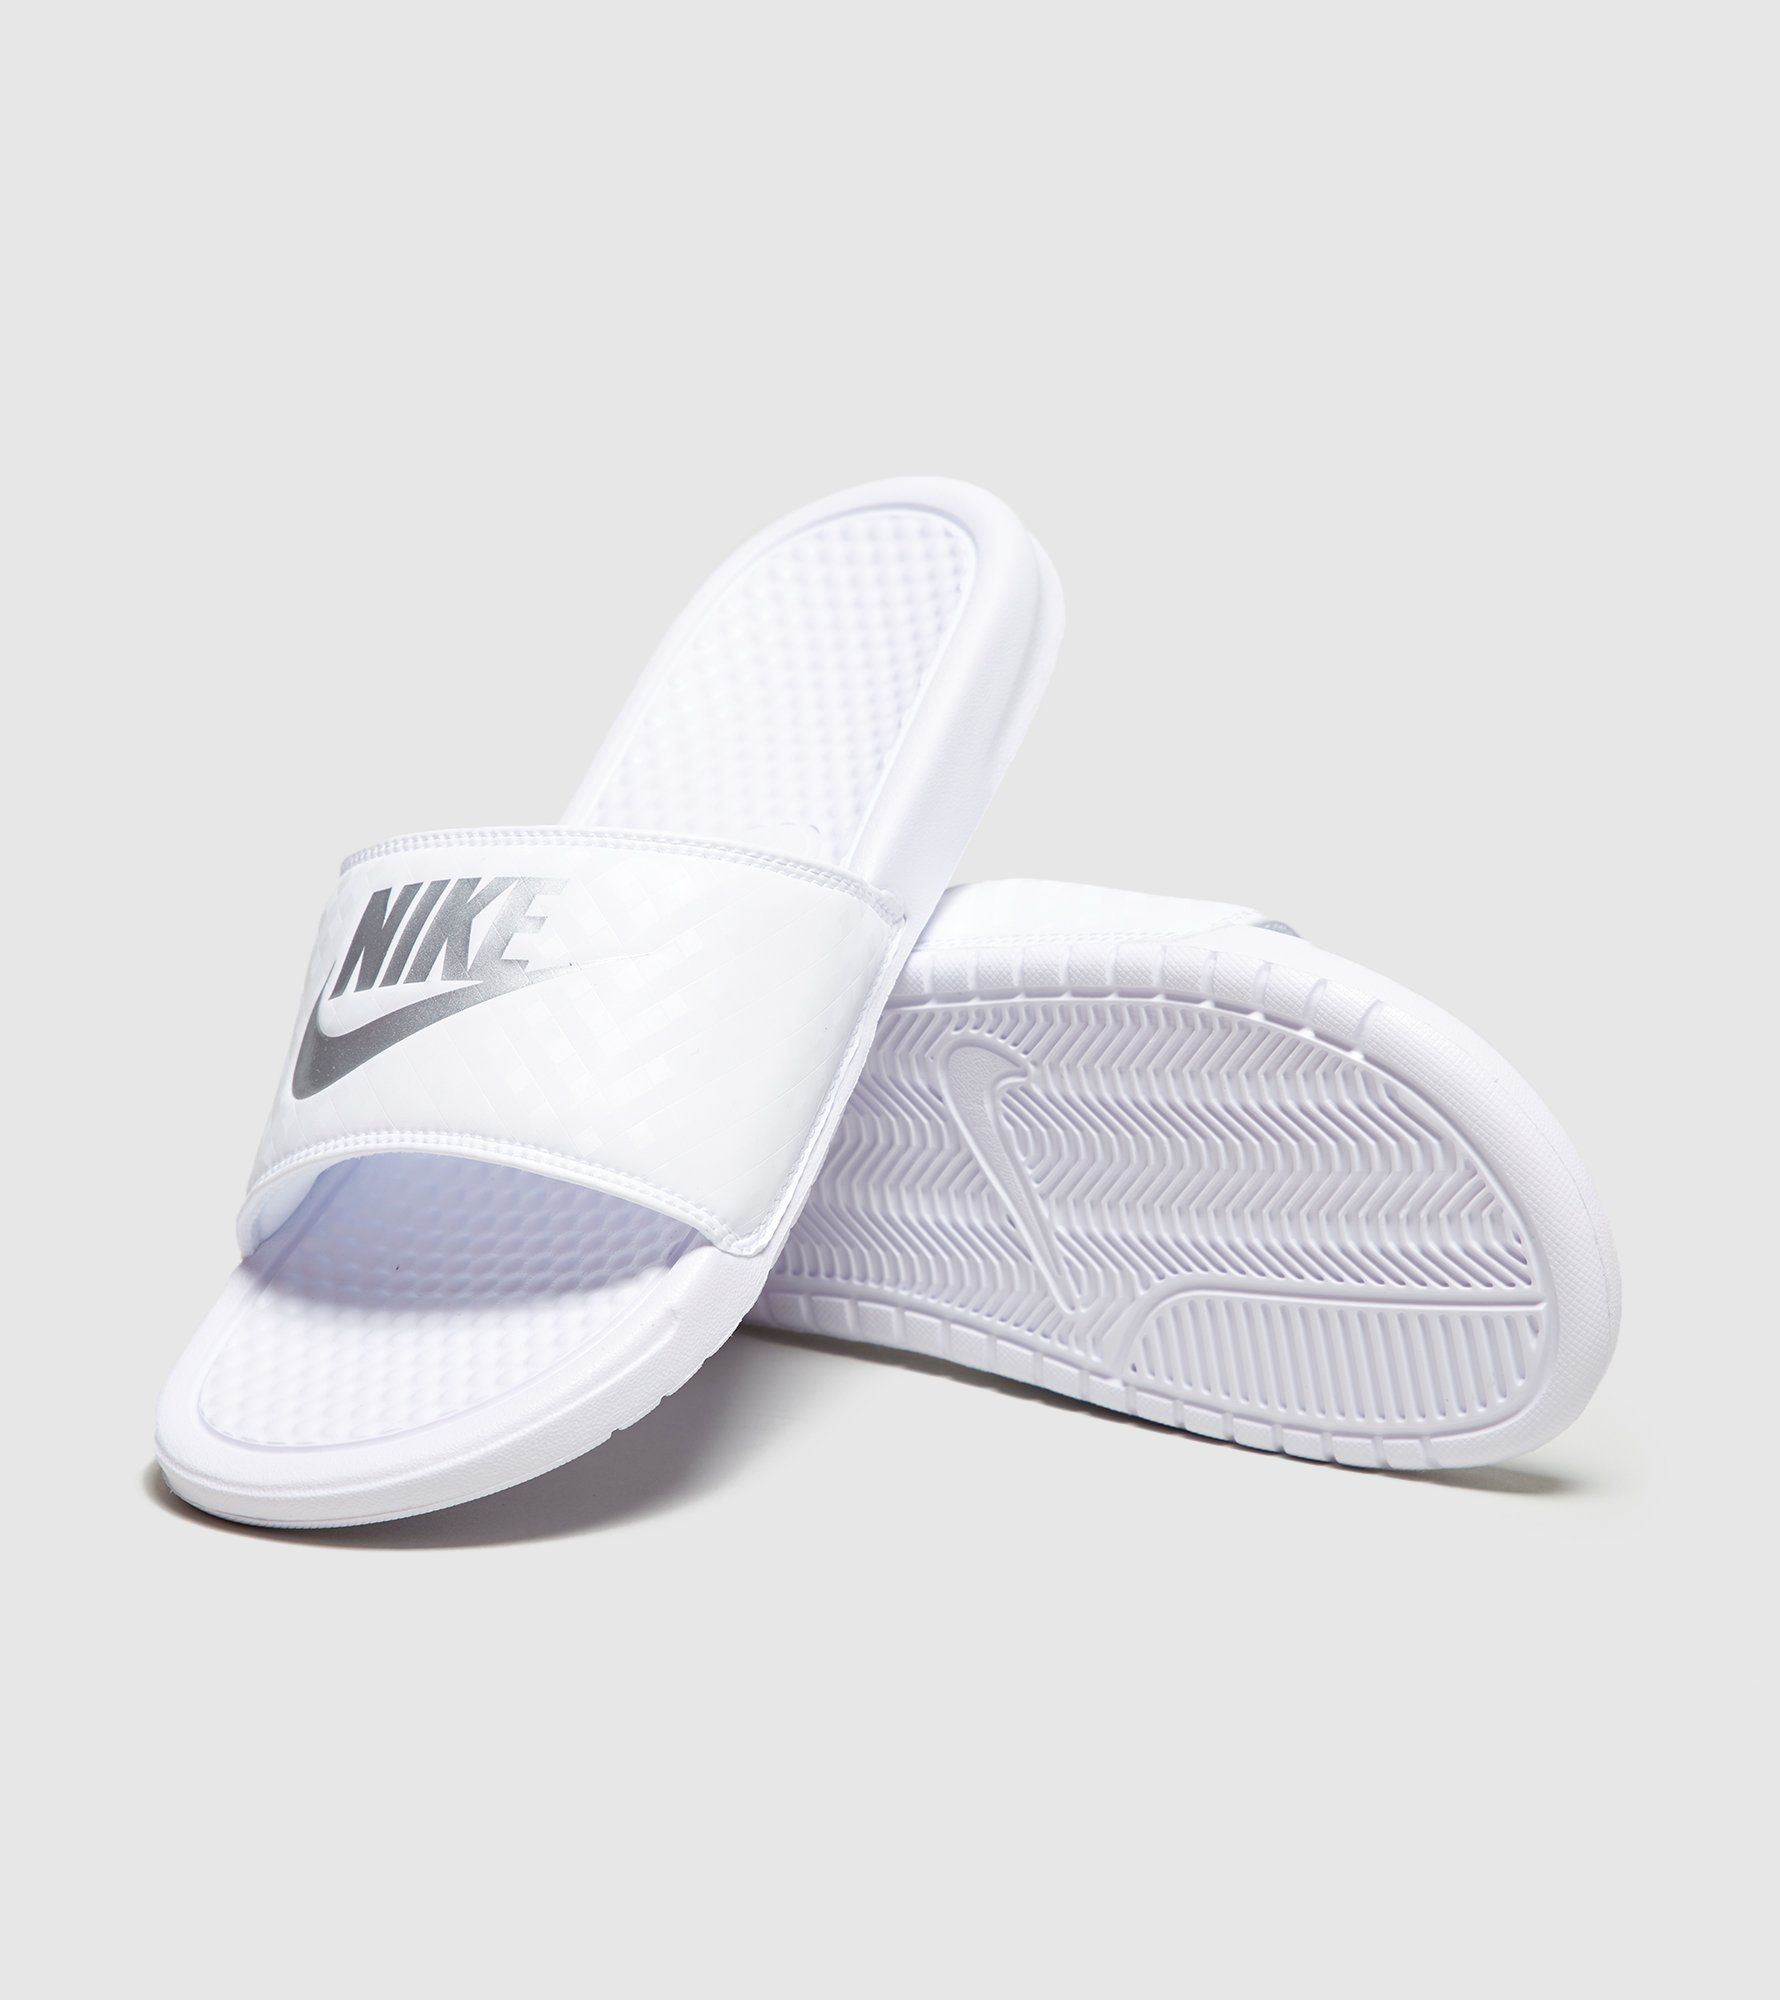 Nike Benassi Just Do It Slides Women's